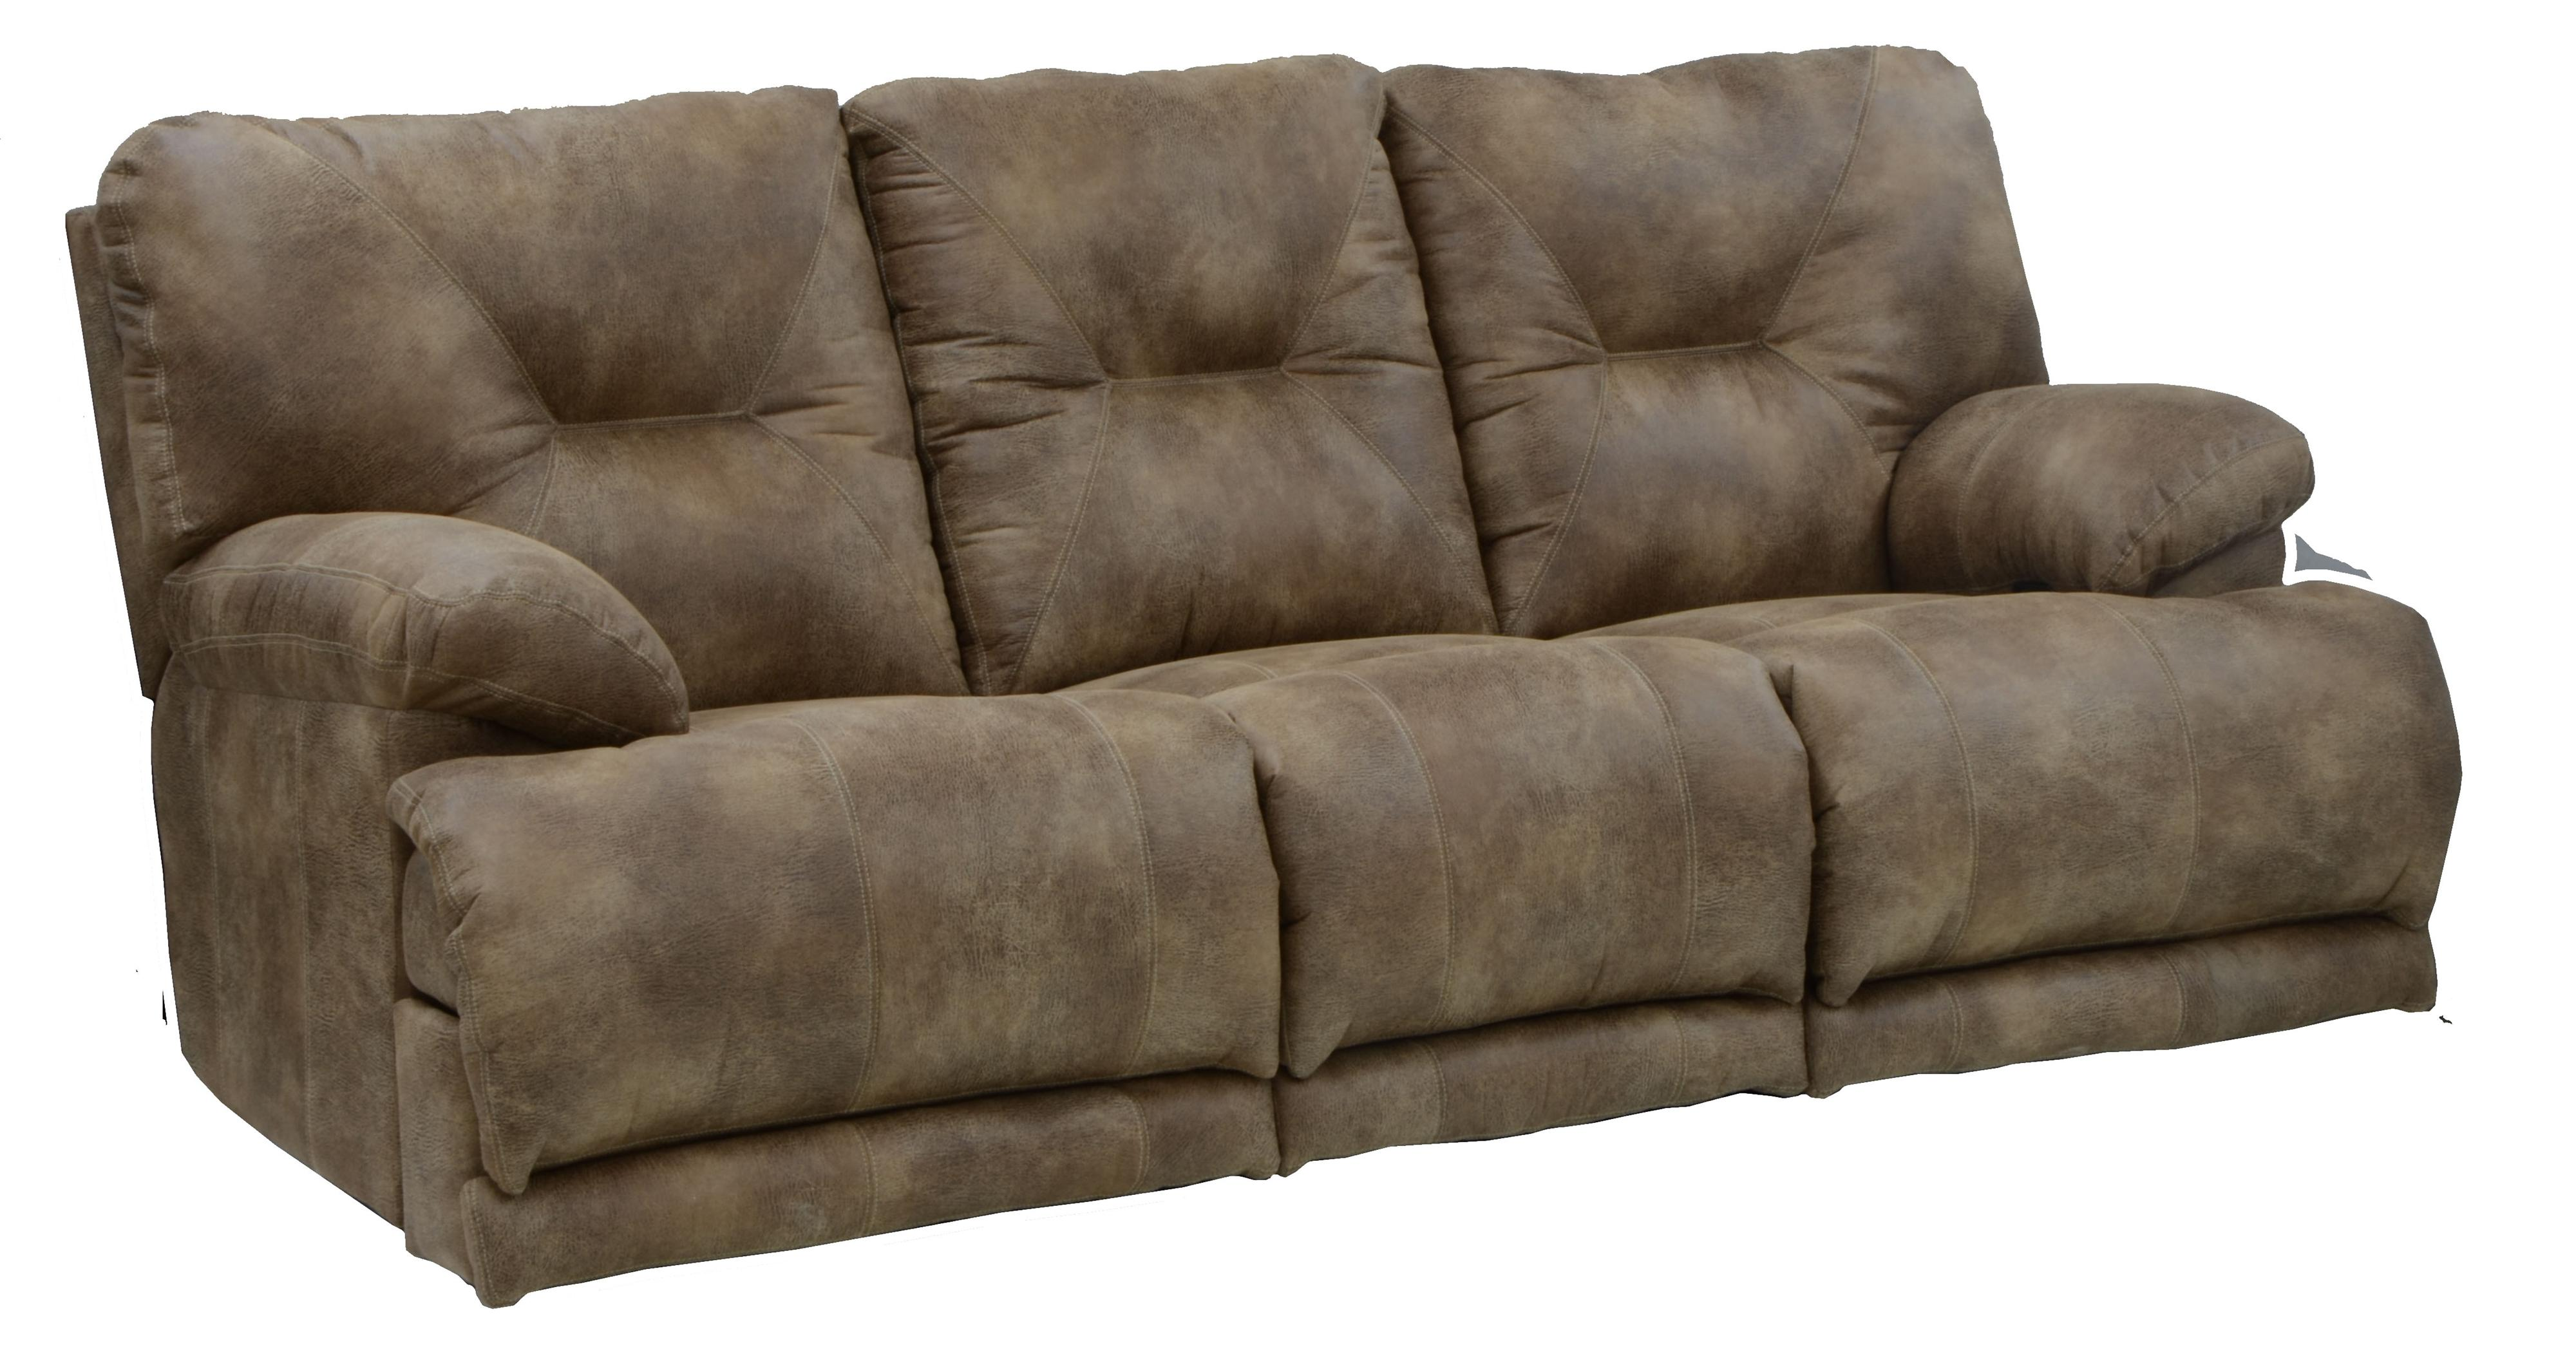 Power 3 seat lay flat reclining sofa by catnapper wolf and gardiner wolf furniture - Sofa reclinable ...